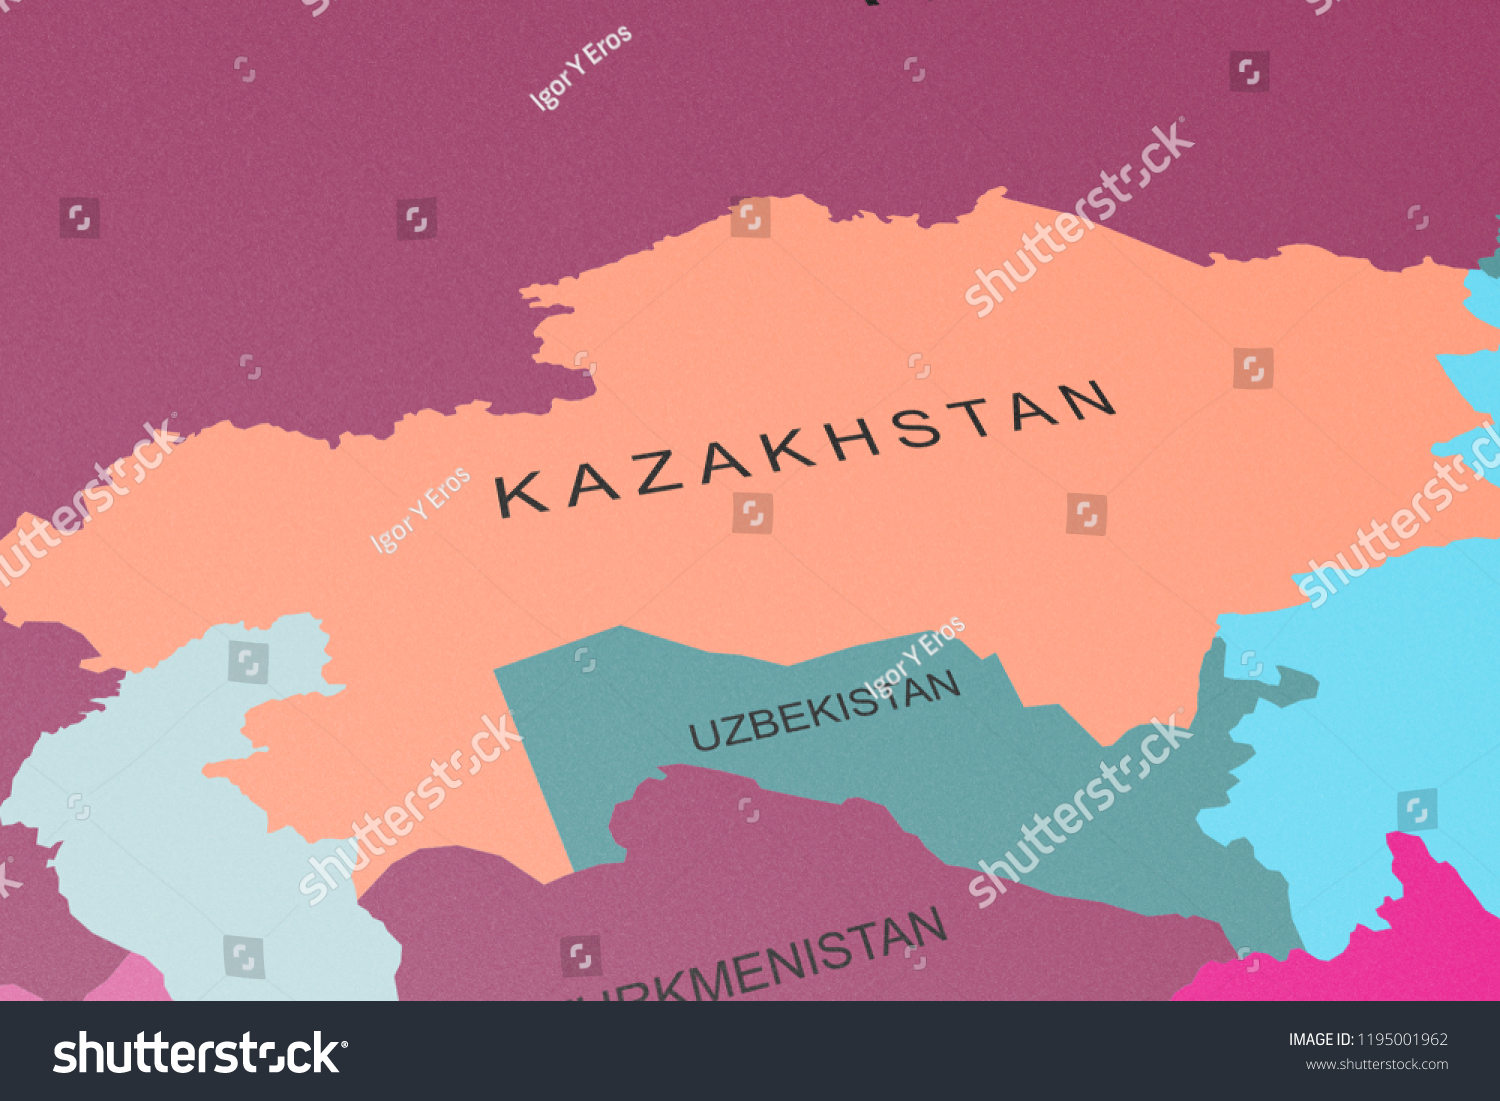 Kazakhstan Political Map.Political Map Central Asia Kazakhstan Focus Stock Illustration